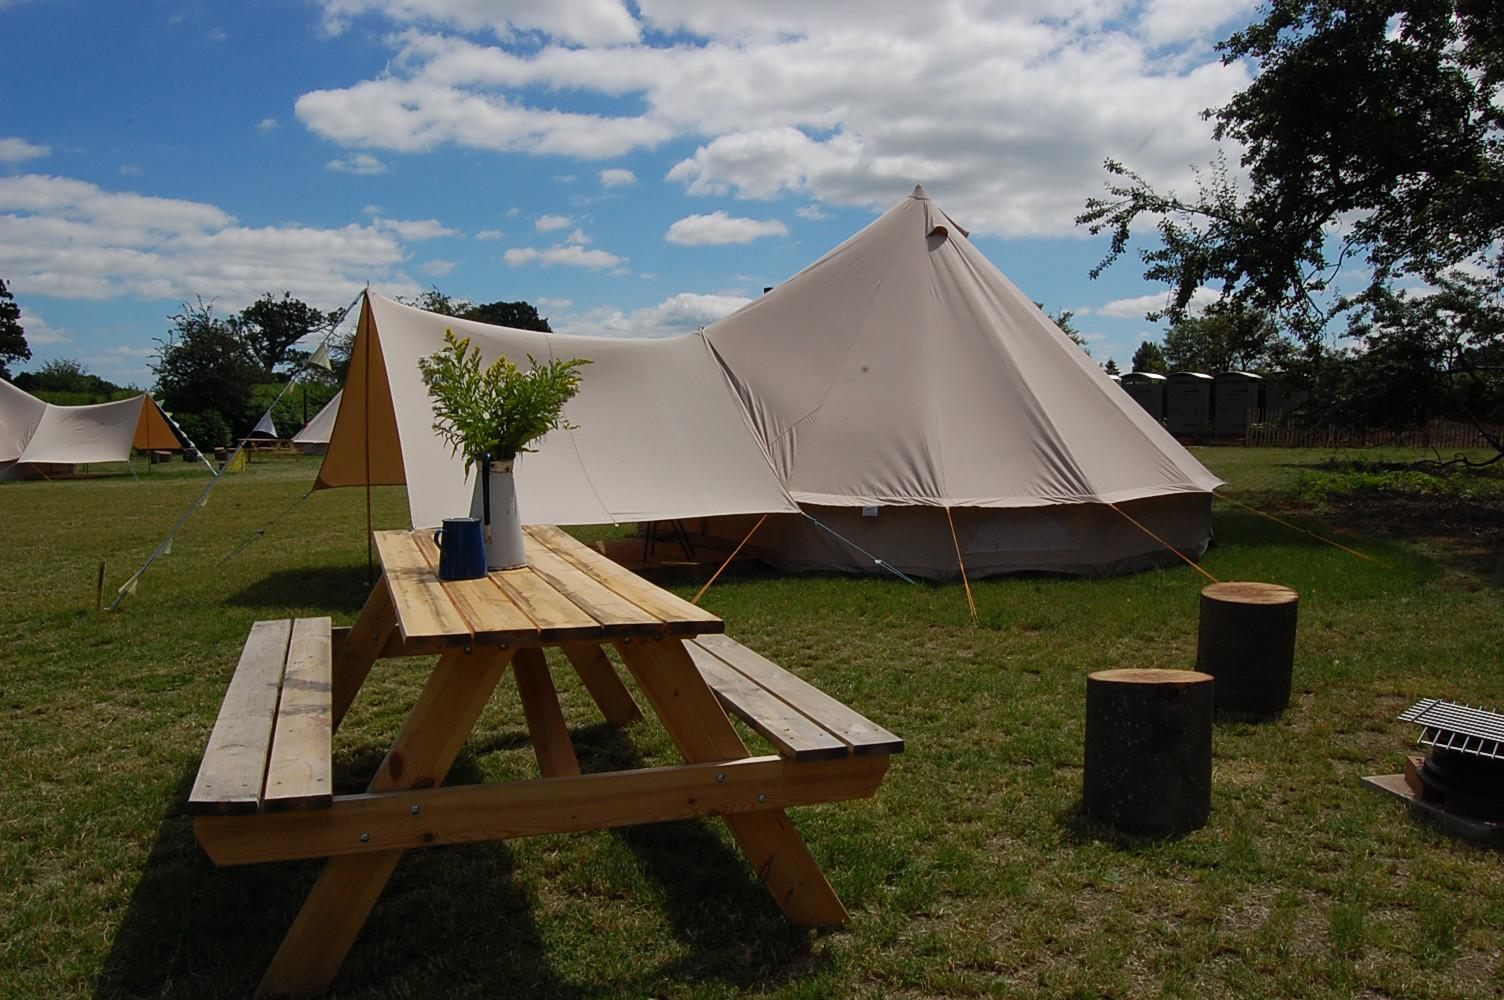 Campsites in Wroxham & Hoveton – Glampingly